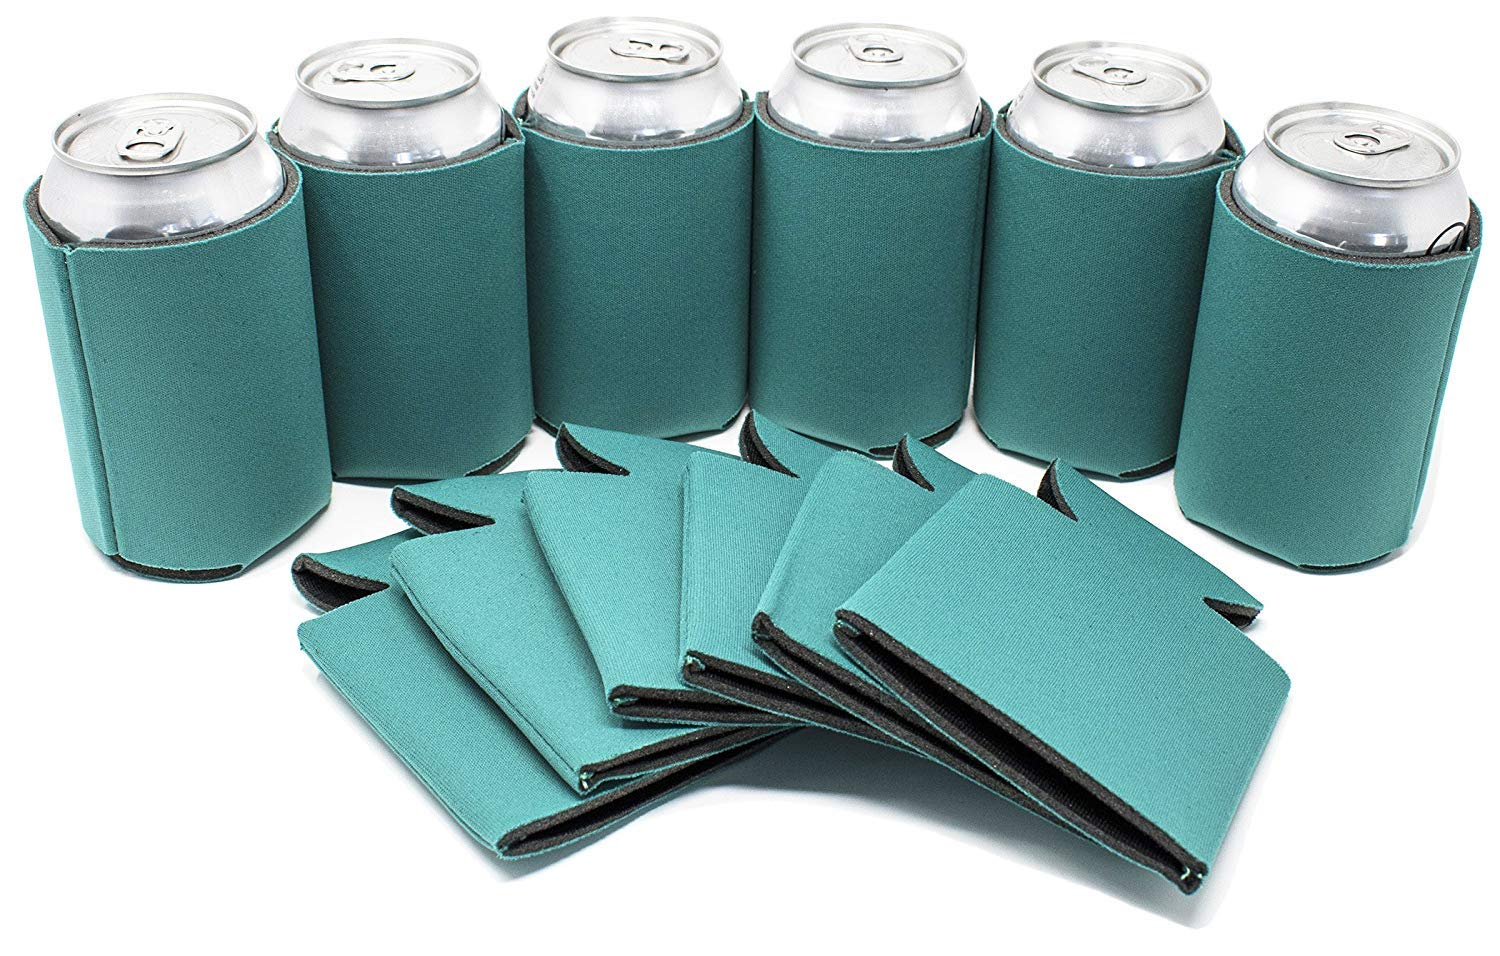 TahoeBay 12 Blank Beer Can Coolers, Plain Bulk Collapsible Soda Cover Coolies, DIY Personalized Sublimation Sleeves for Weddings, Bachelorette Parties, Funny HTV Party Favors (Teal, 12)